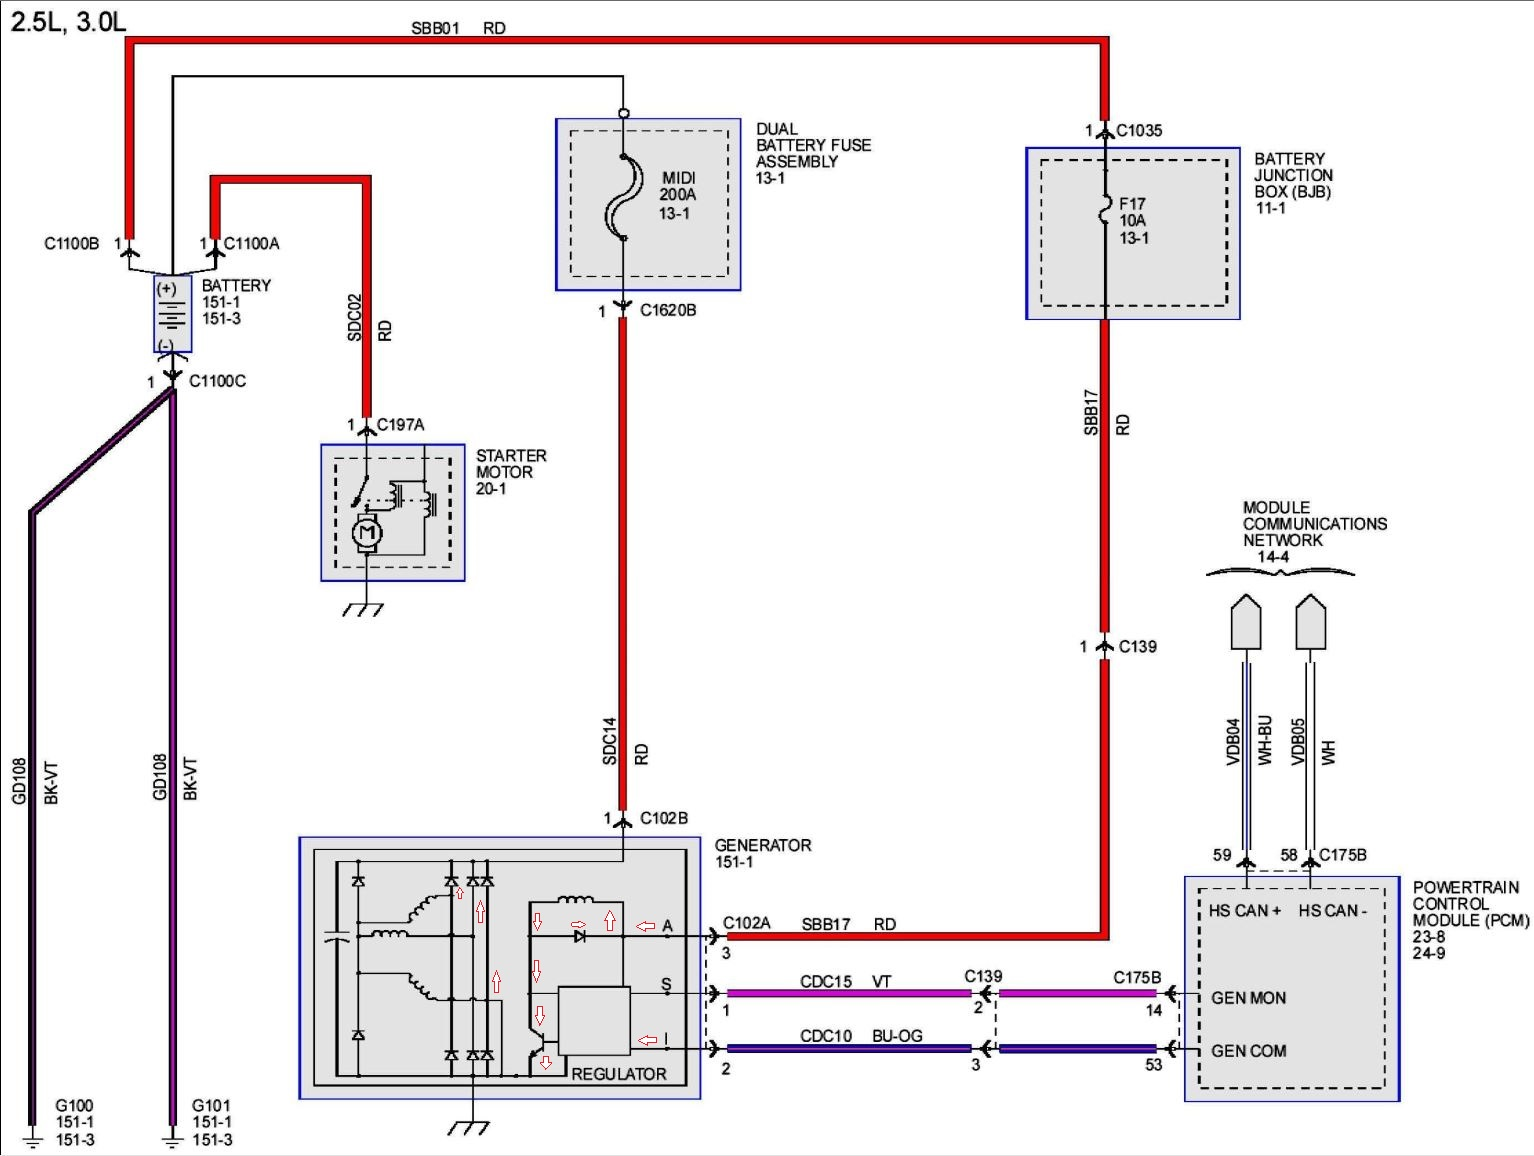 Wiring Diagram For 2005 Mazda 6 Schematics Data Diagrams 2003 Fuse Box 3 Alternator 33 Images 138dhw Co Parts Abs